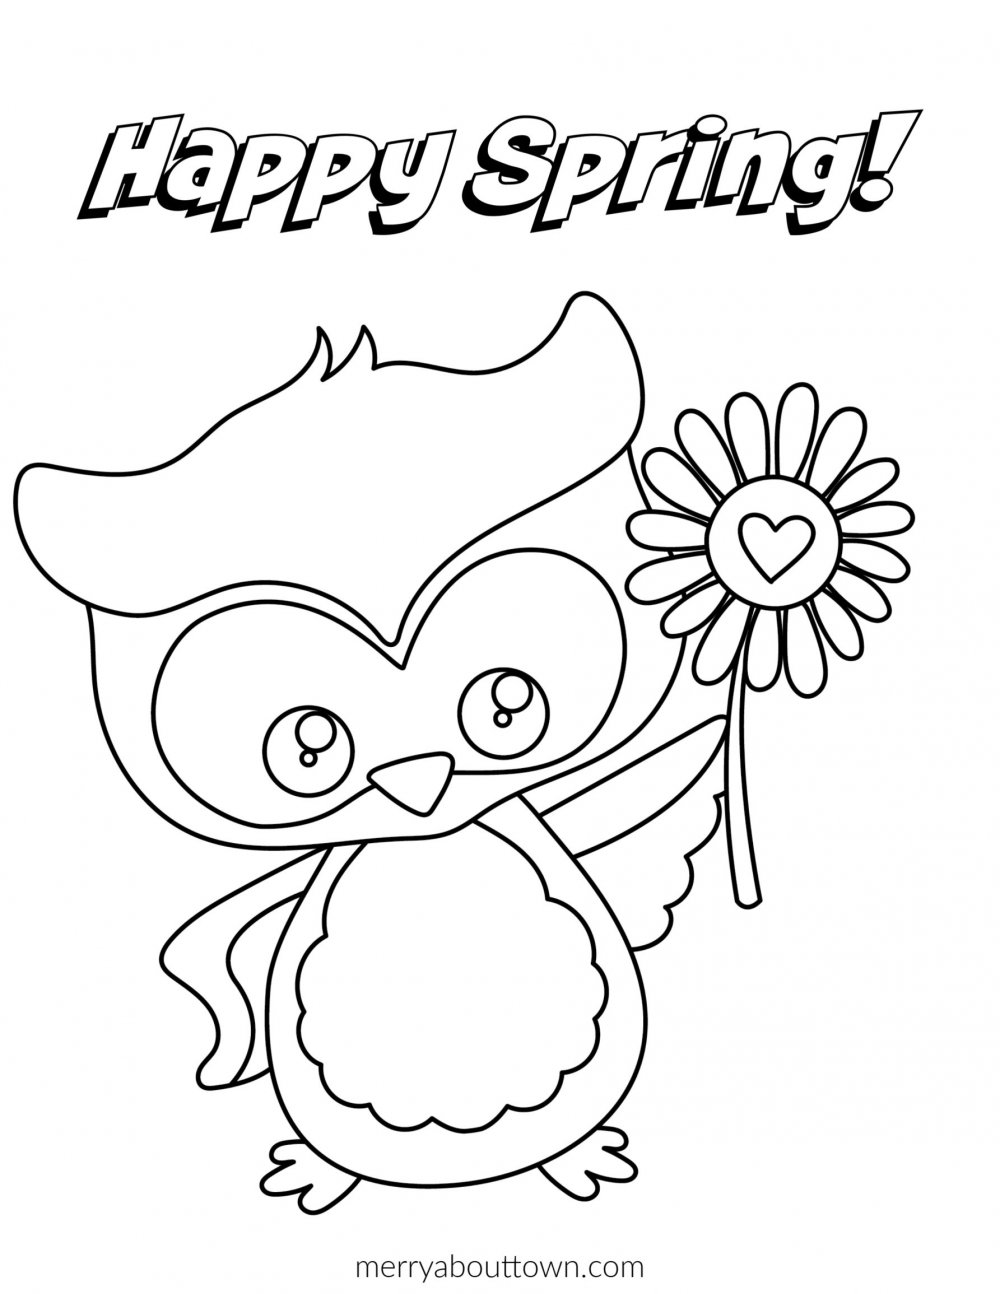 Free Printable Spring Coloring Sheets Merry About Town